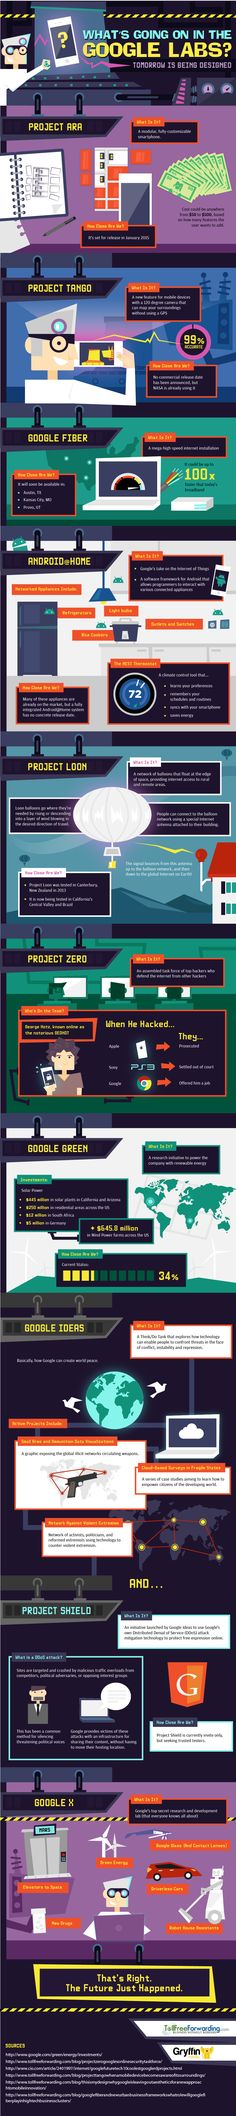 Google X, Project Tango And ARA: What's really going on at Google's secret lab? - #infographic #technology #google